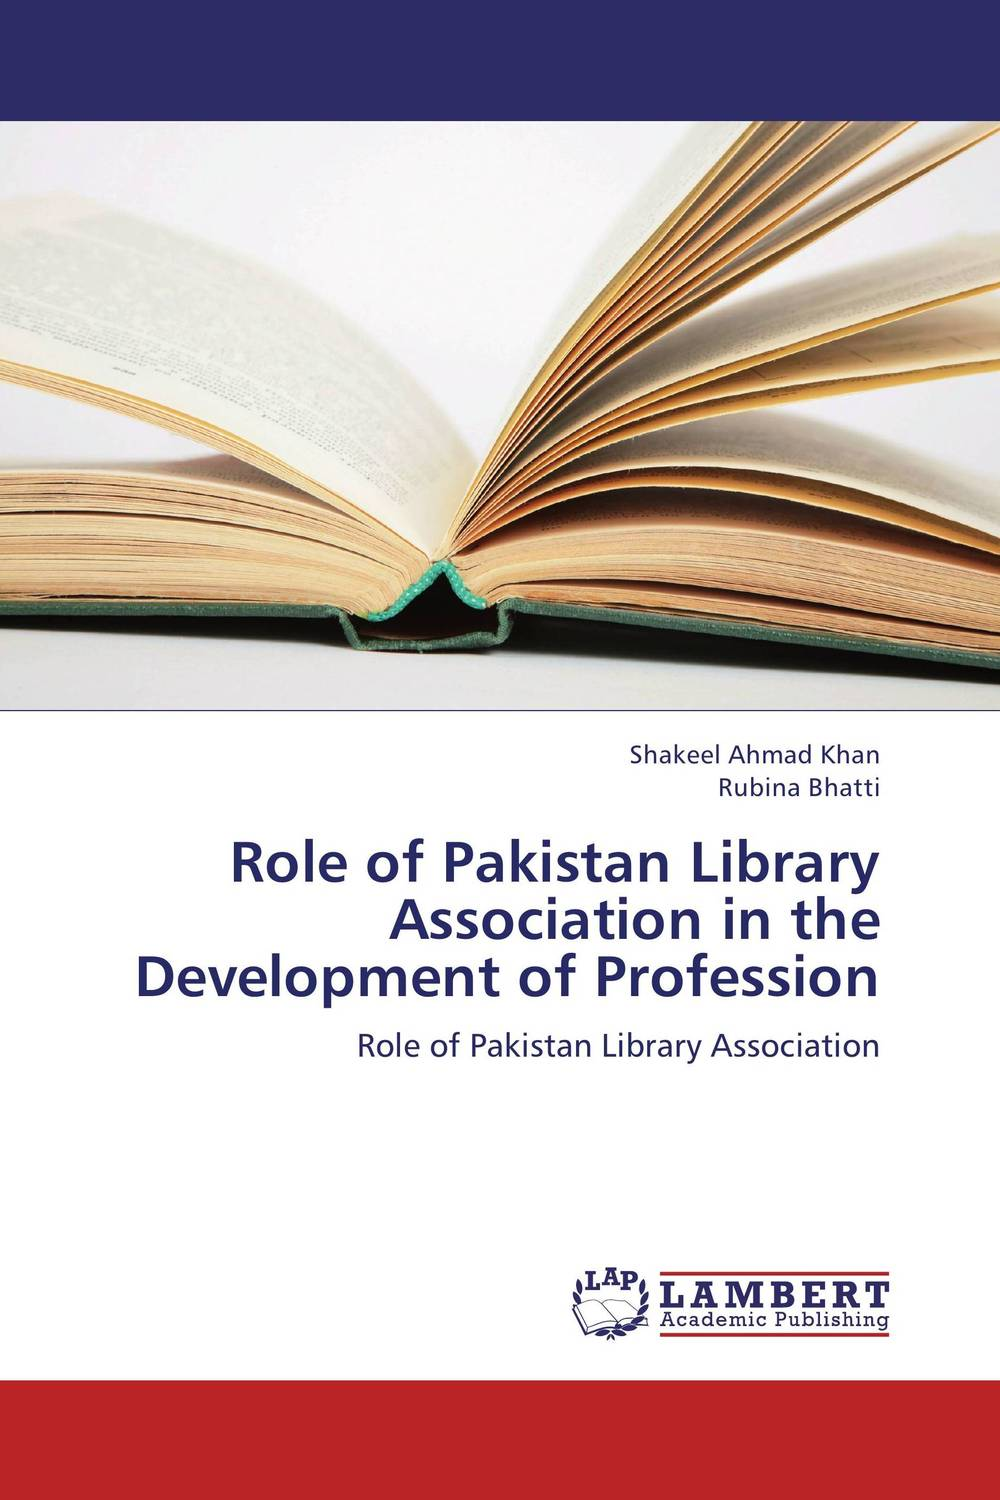 Role of Pakistan Library Association in the Development of Profession voluntary associations in tsarist russia – science patriotism and civil society